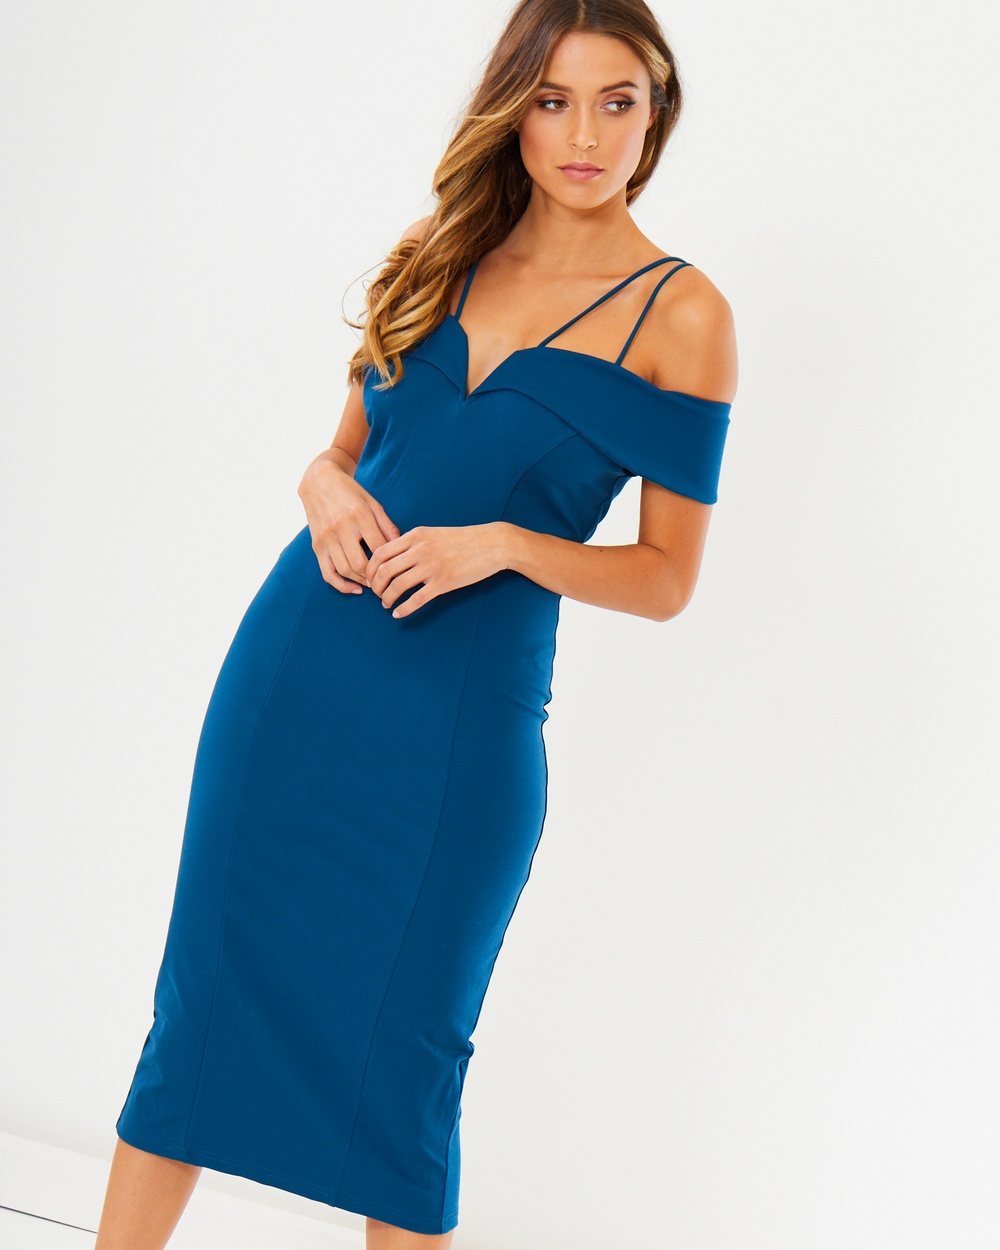 Calli Ada Off Shoulder Dress Bodycon Dresses Blue Ada Off-Shoulder Dress